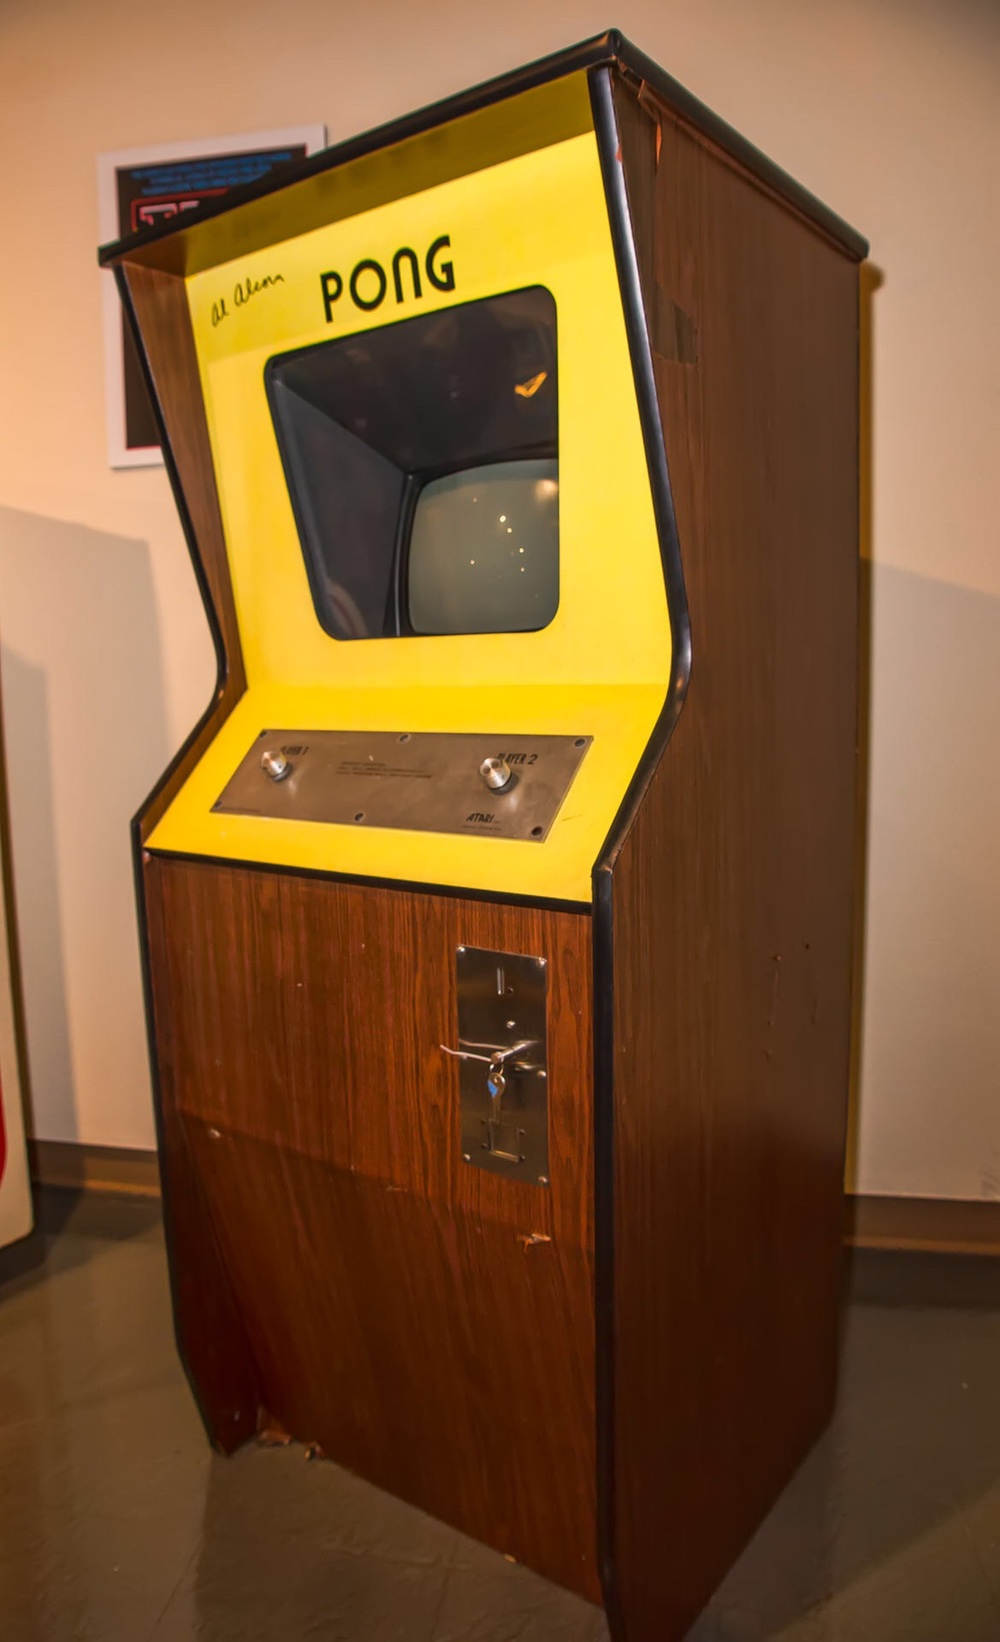 original archade game version of pong